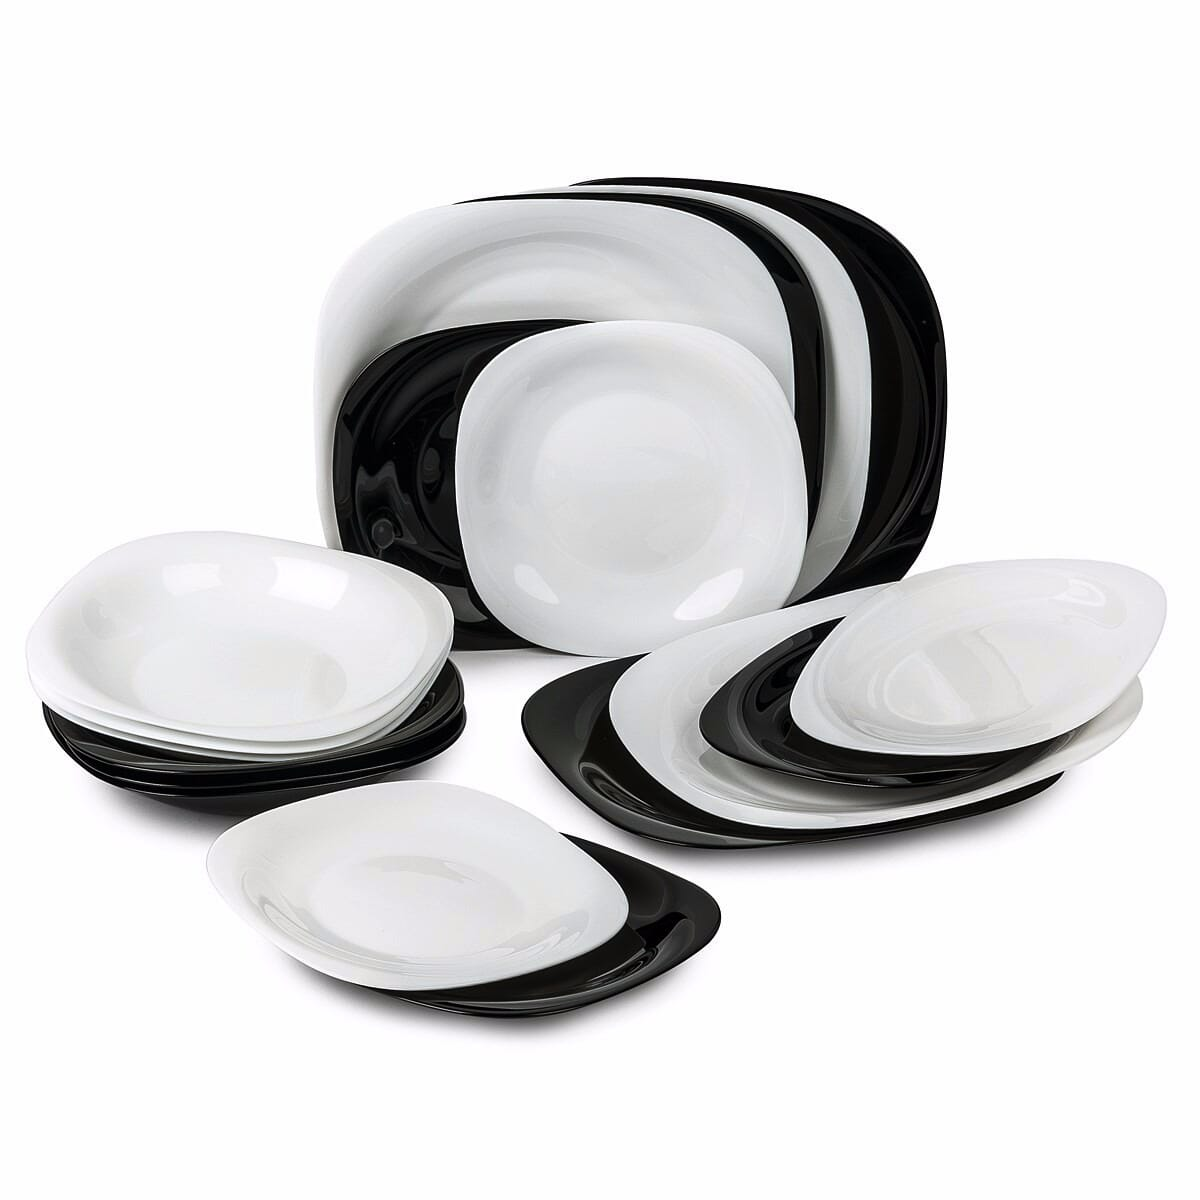 Luminarc Dining Sets 19 Pcs Carine Black and White Plates Bowls  sc 1 st  eBay : luminarc tableware - Pezcame.Com